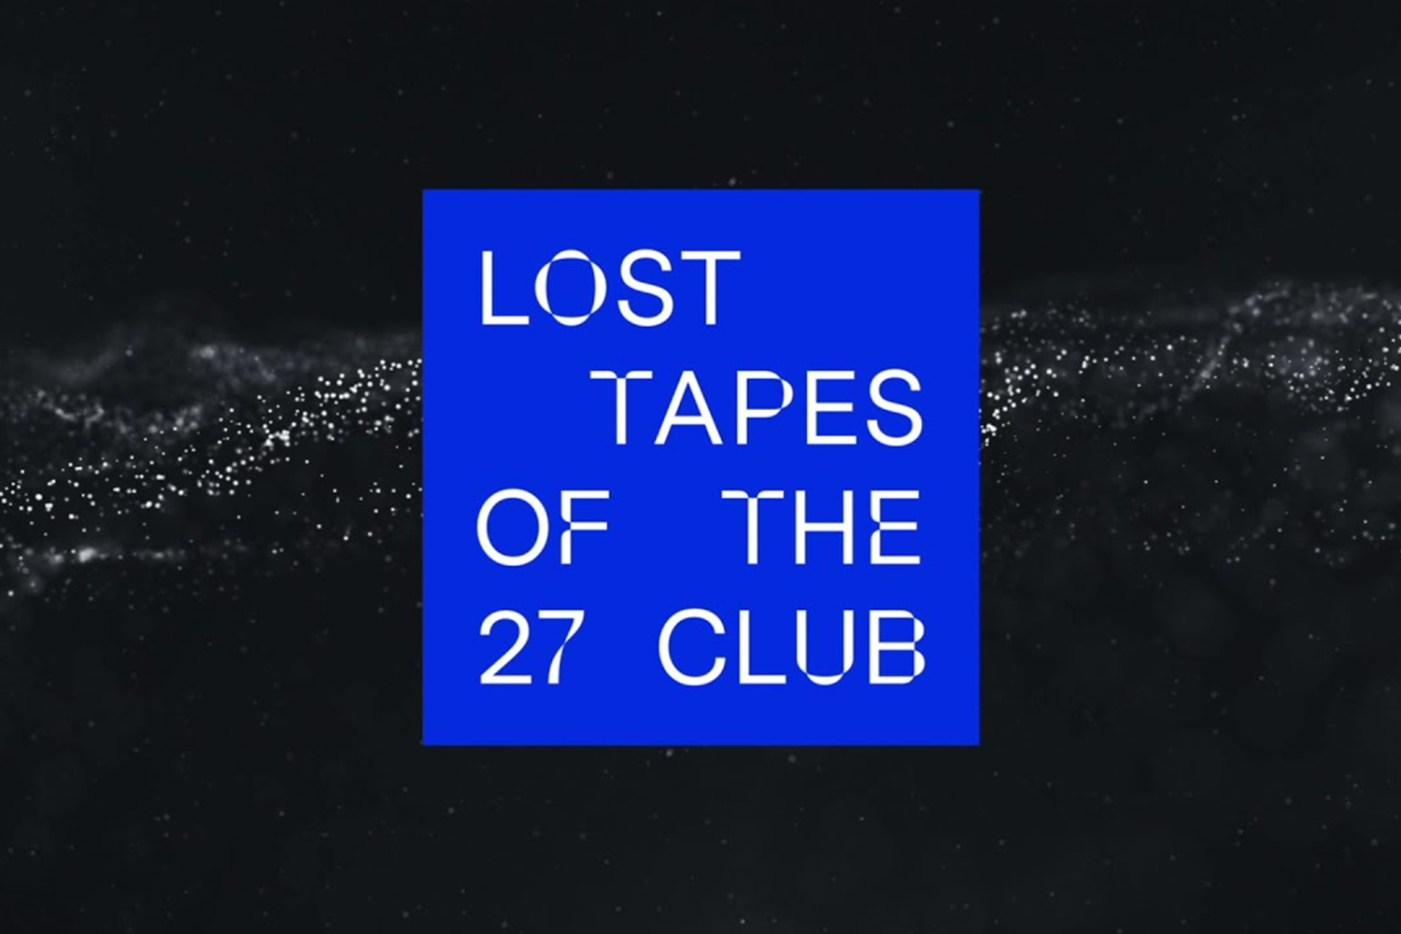 lost-tapes-27-club